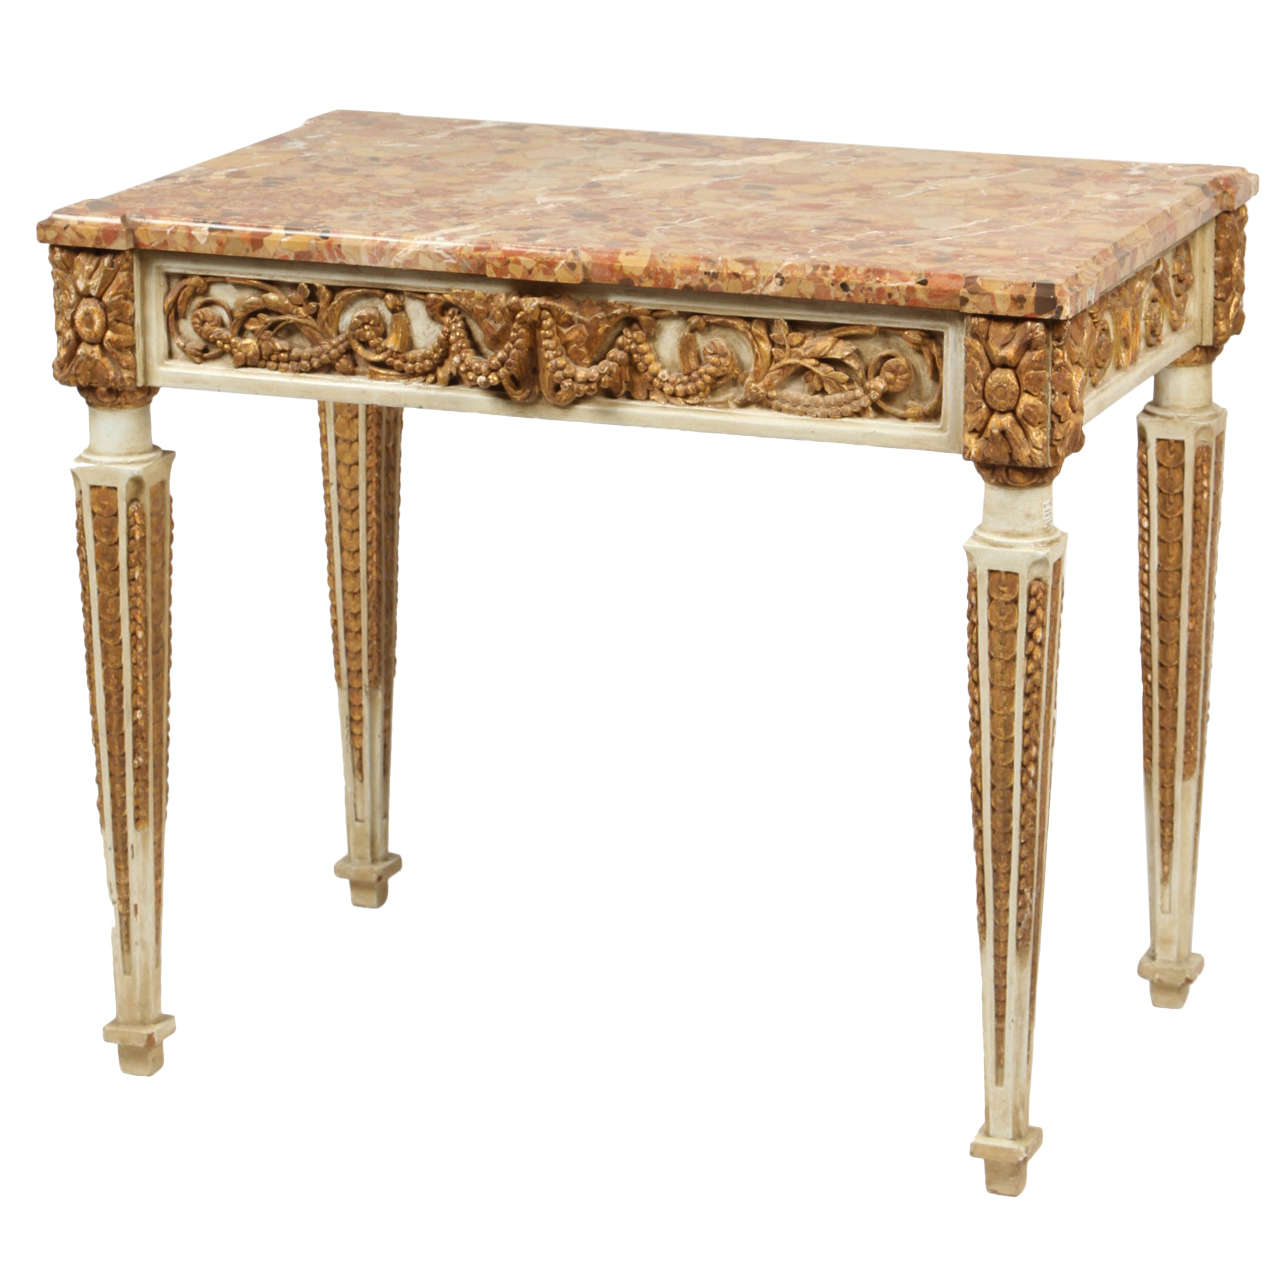 carved and gilt italian console table late 18th century for sale at 1stdibs. Black Bedroom Furniture Sets. Home Design Ideas